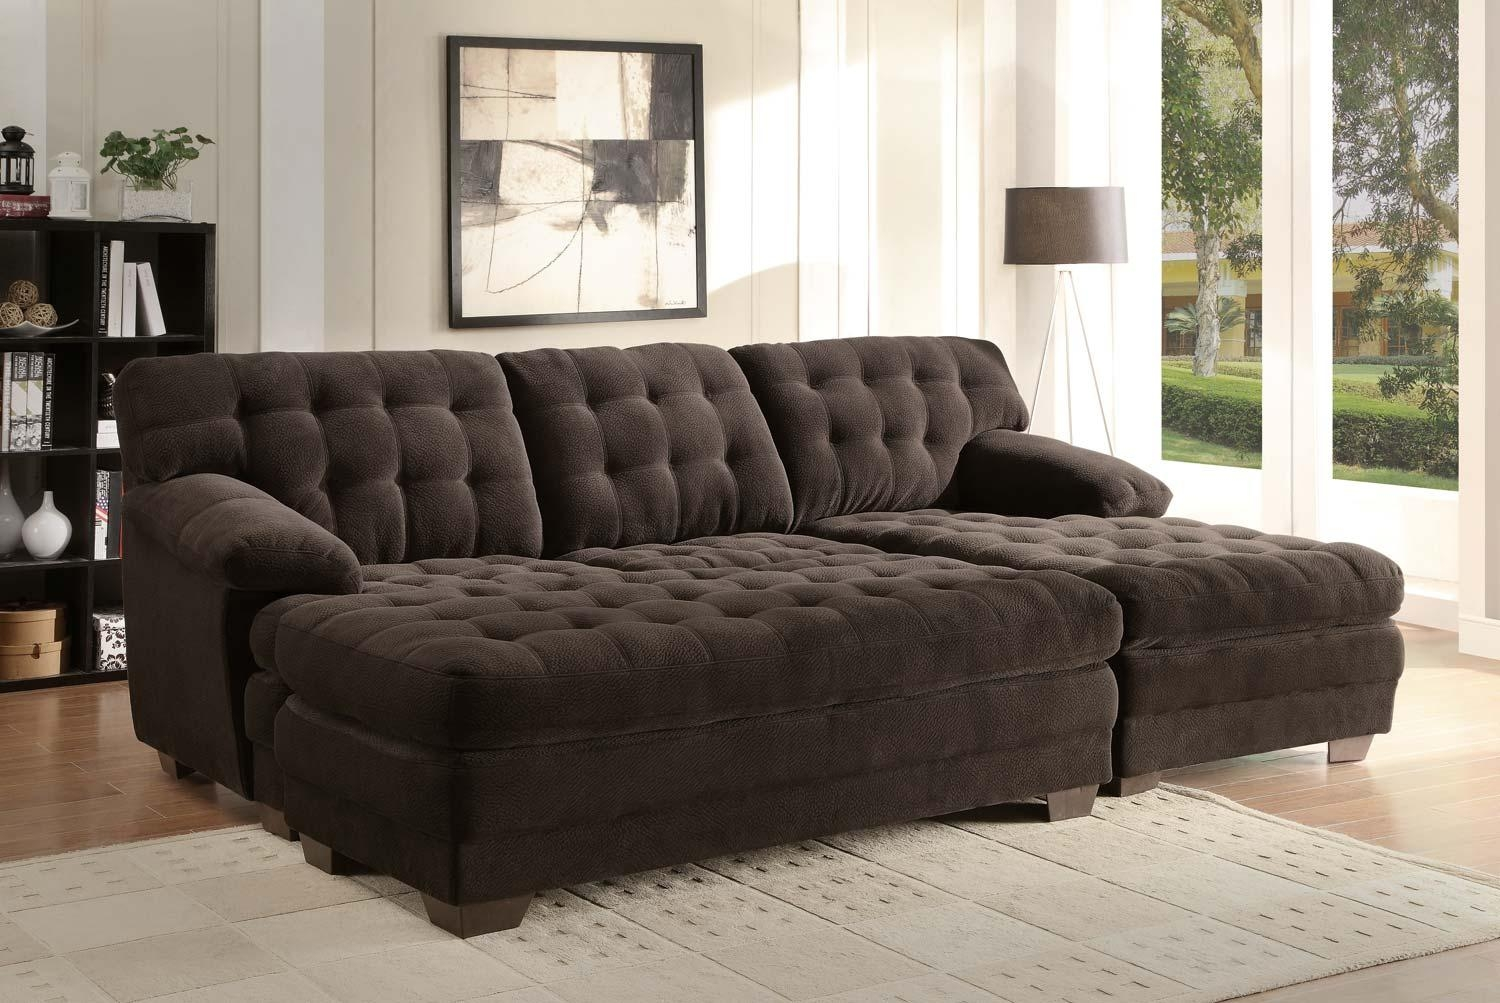 Sectional Sofa Couch Reversible Chaise Micro Suede Chocolate For Sofa With Chaise And Ottoman (Image 12 of 20)